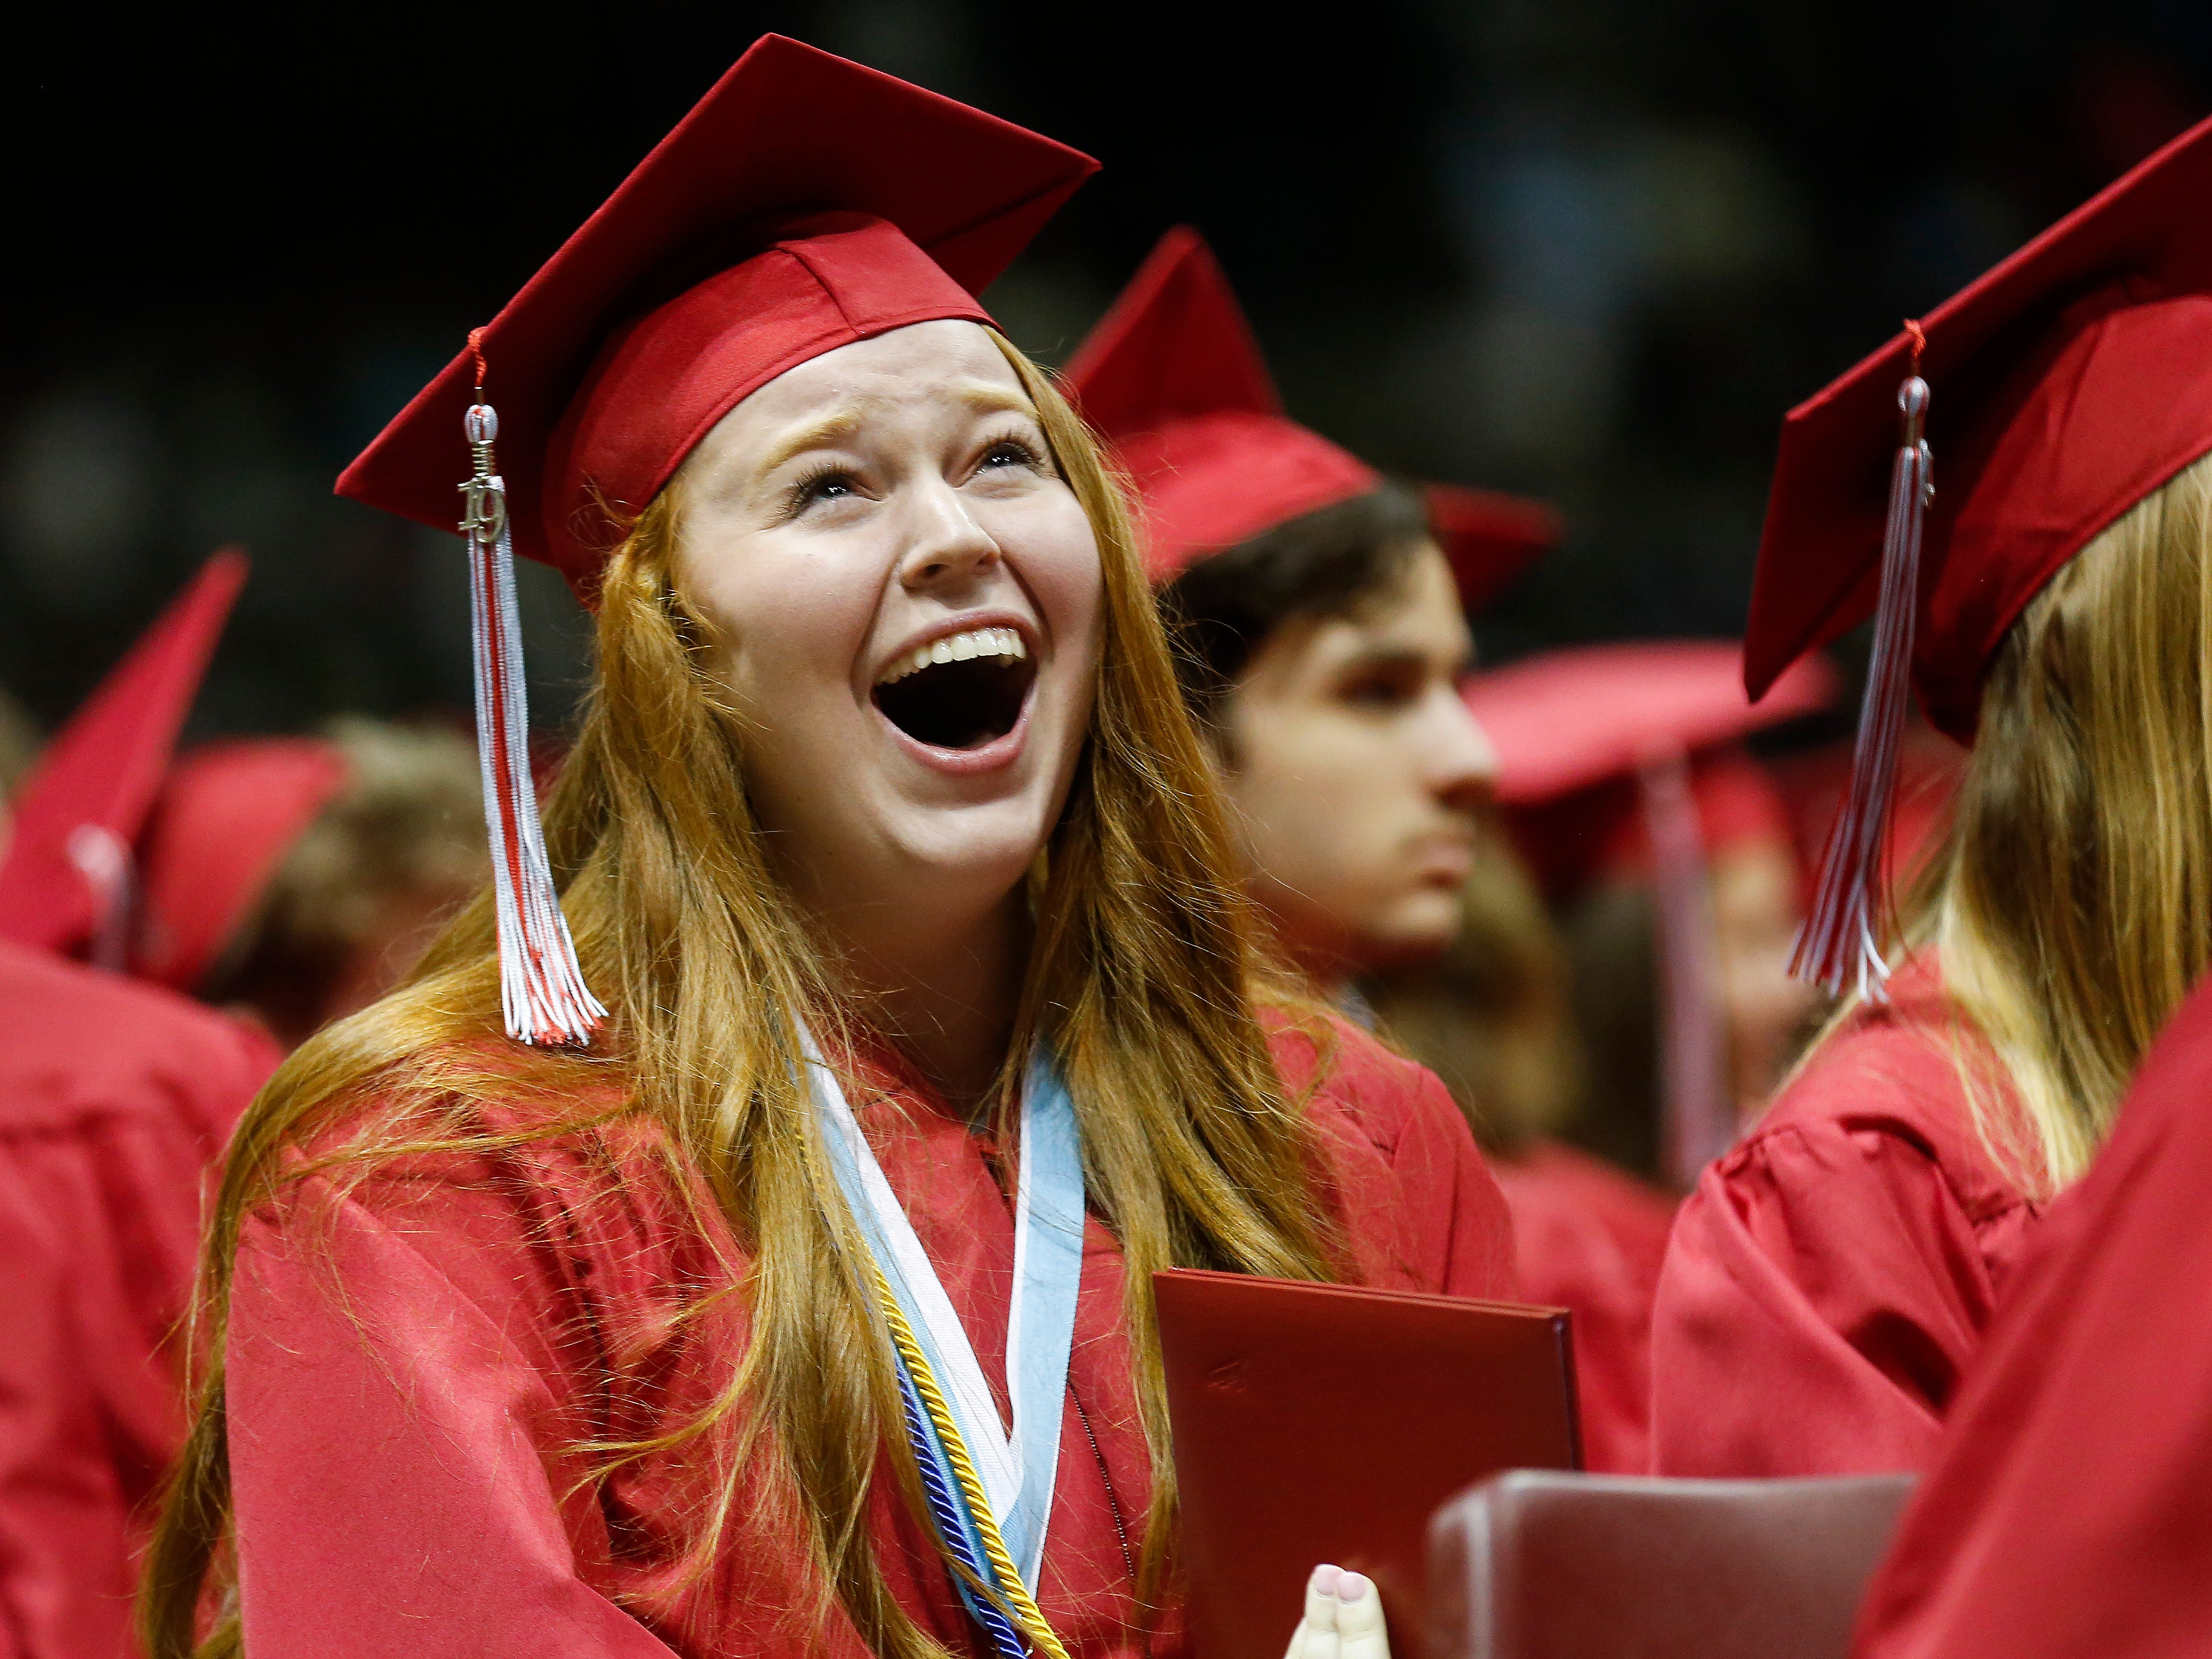 Scenes from Glendale High School's Commencement Ceremony at JQH Arena on Thursday, May 9, 2019.